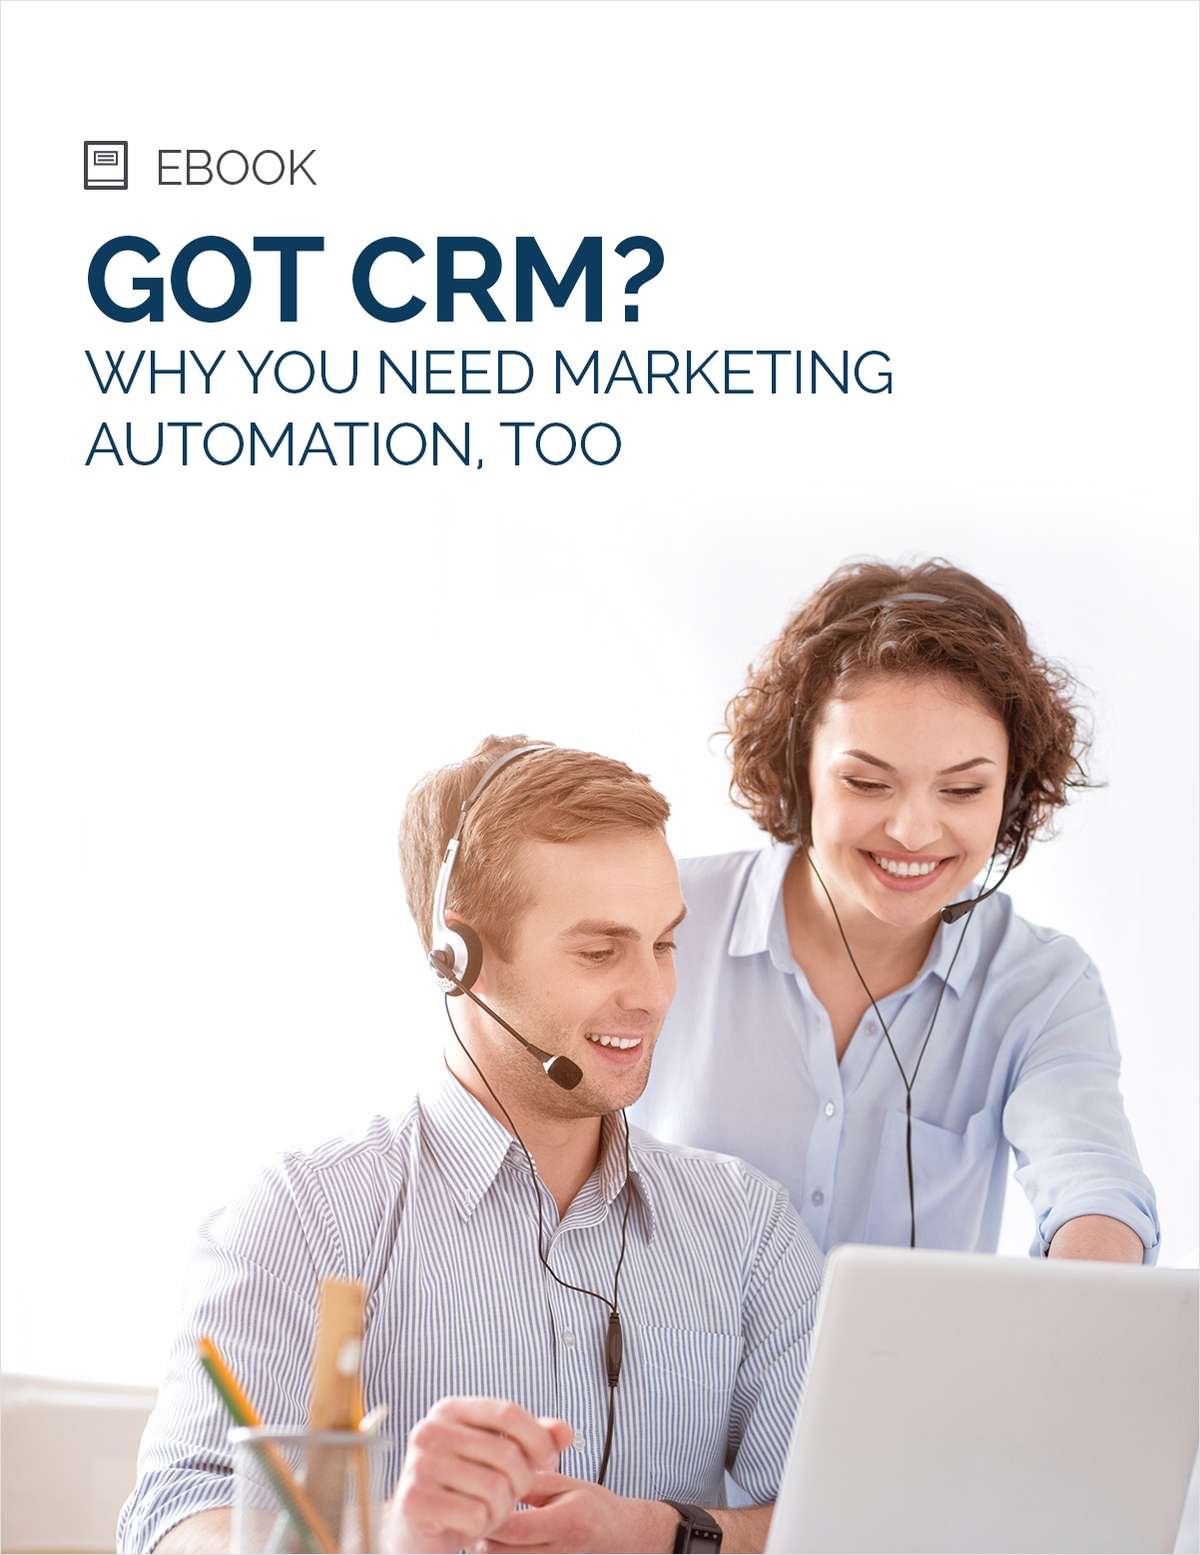 Got CRM? Why You Need Marketing Automation, Too